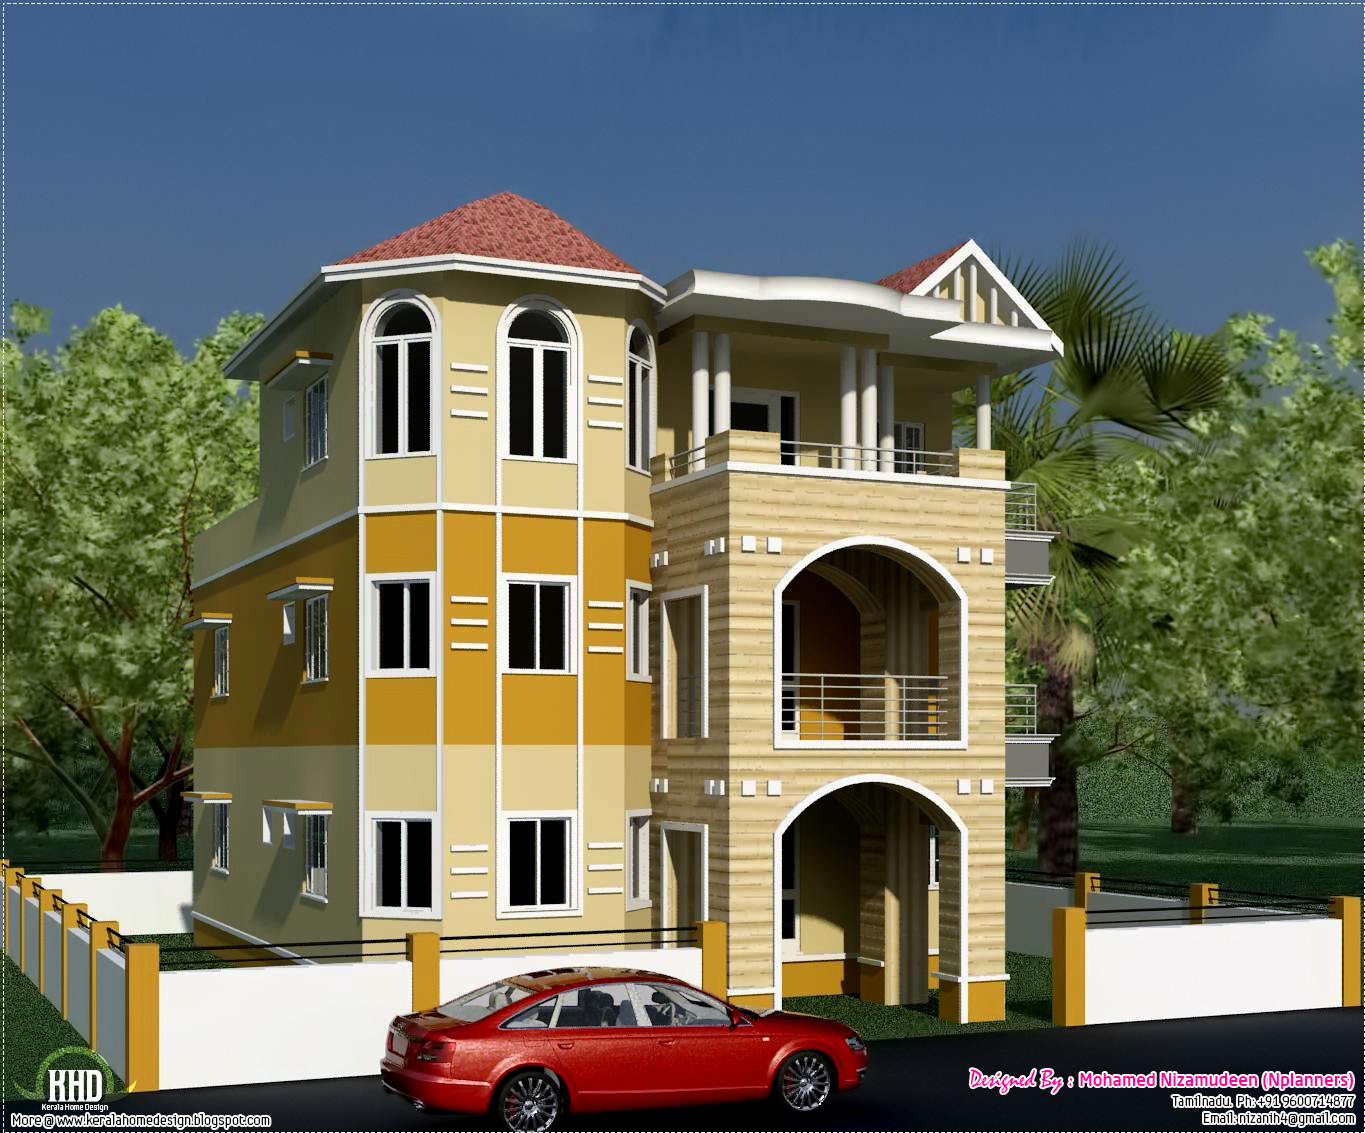 house specification ground floor 1496 38 sq ft first floor